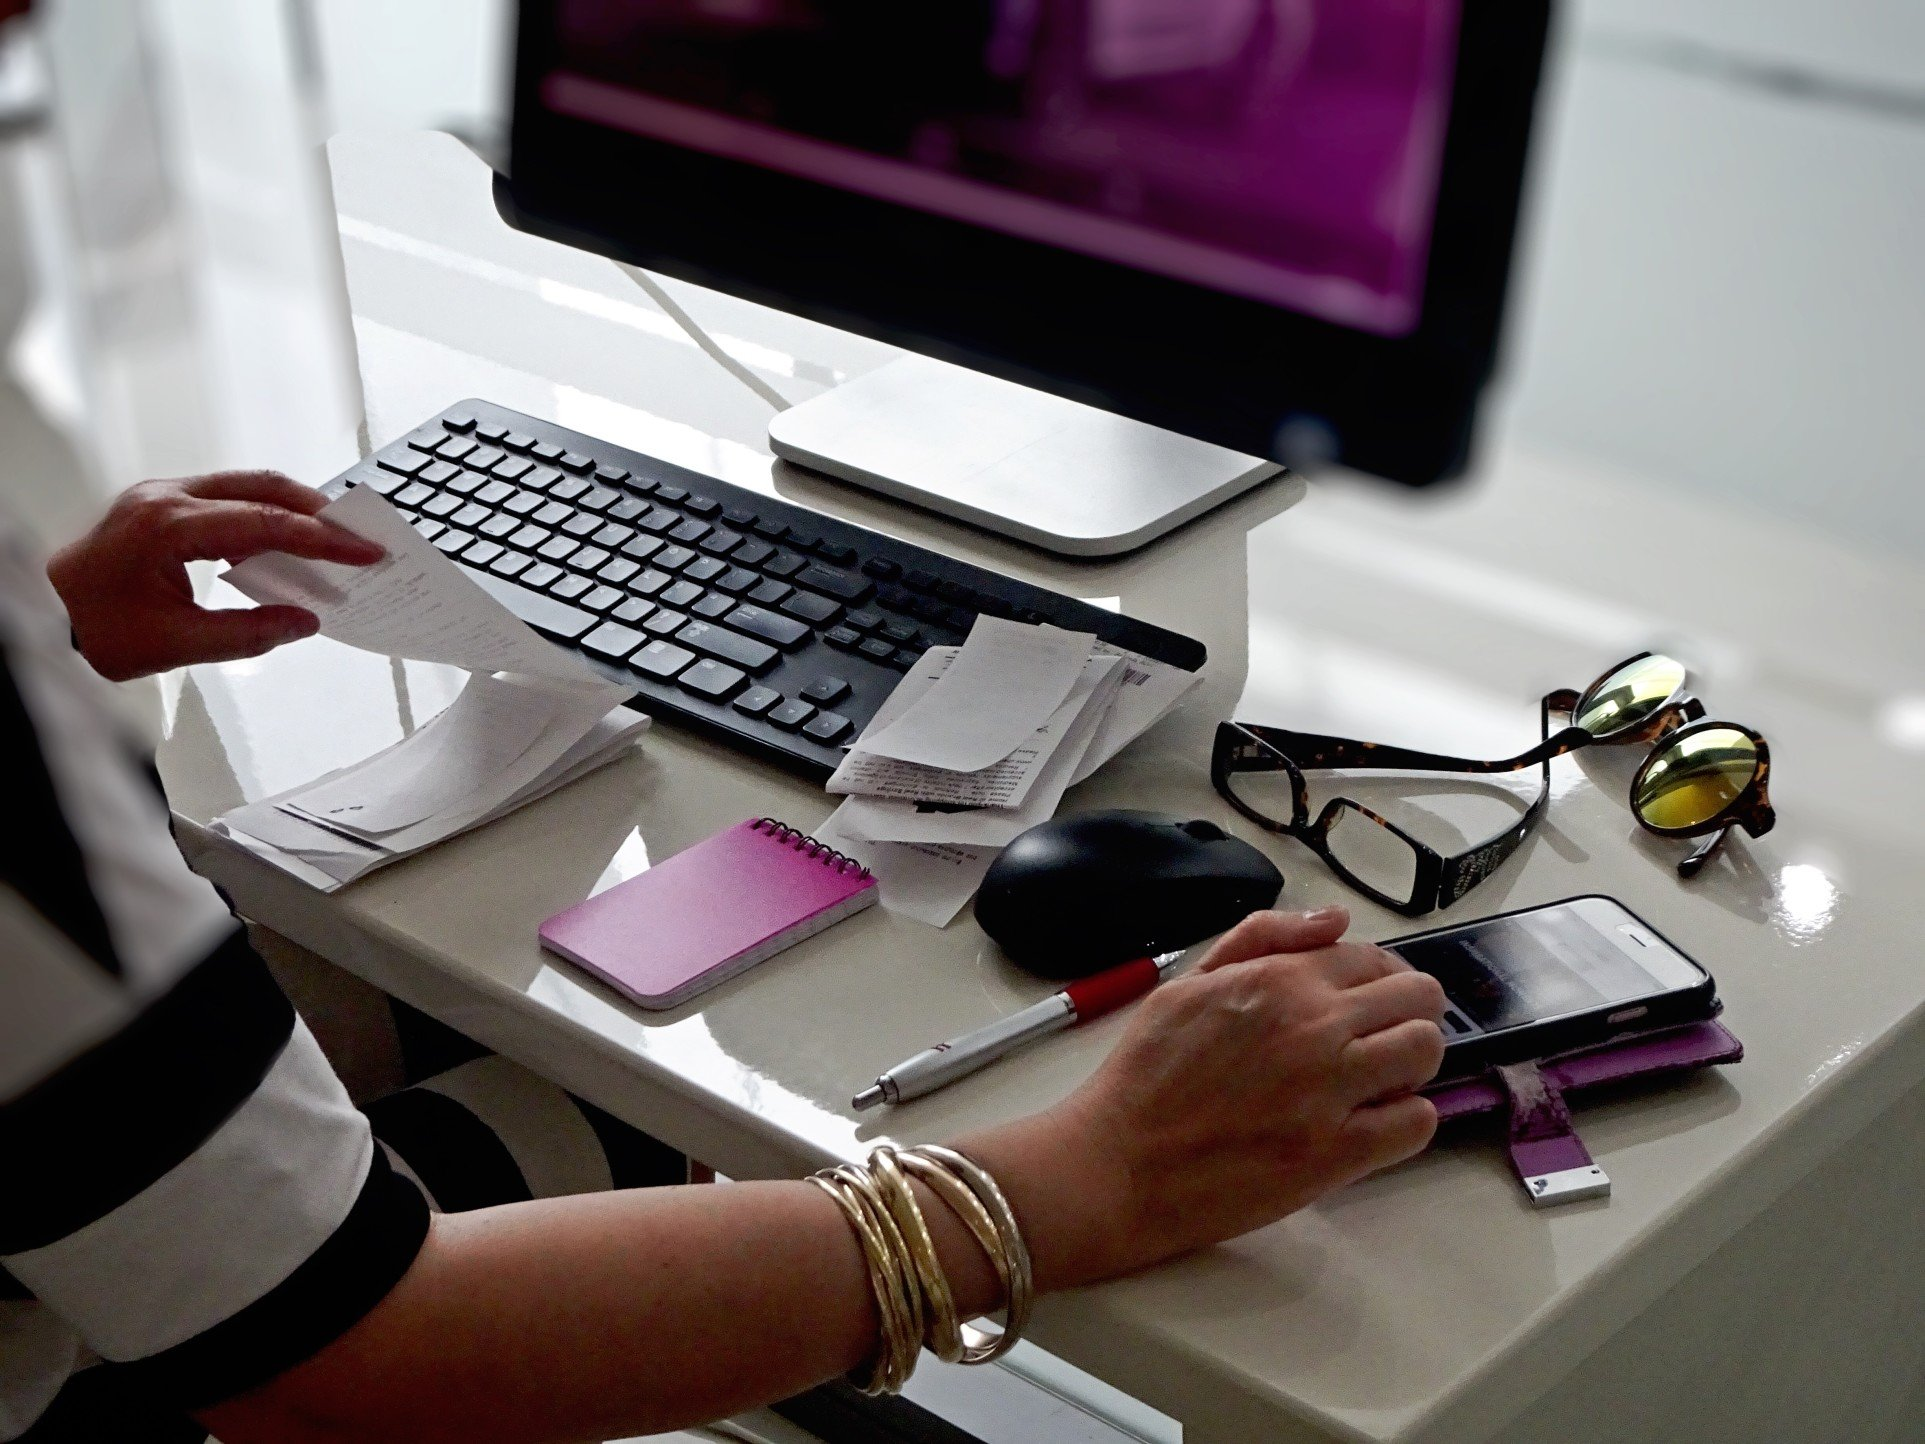 desks-young-professional-woman-working-at-her-modern-deskspace-with-computer-desktop-and-mouse_t20_2w82lZ